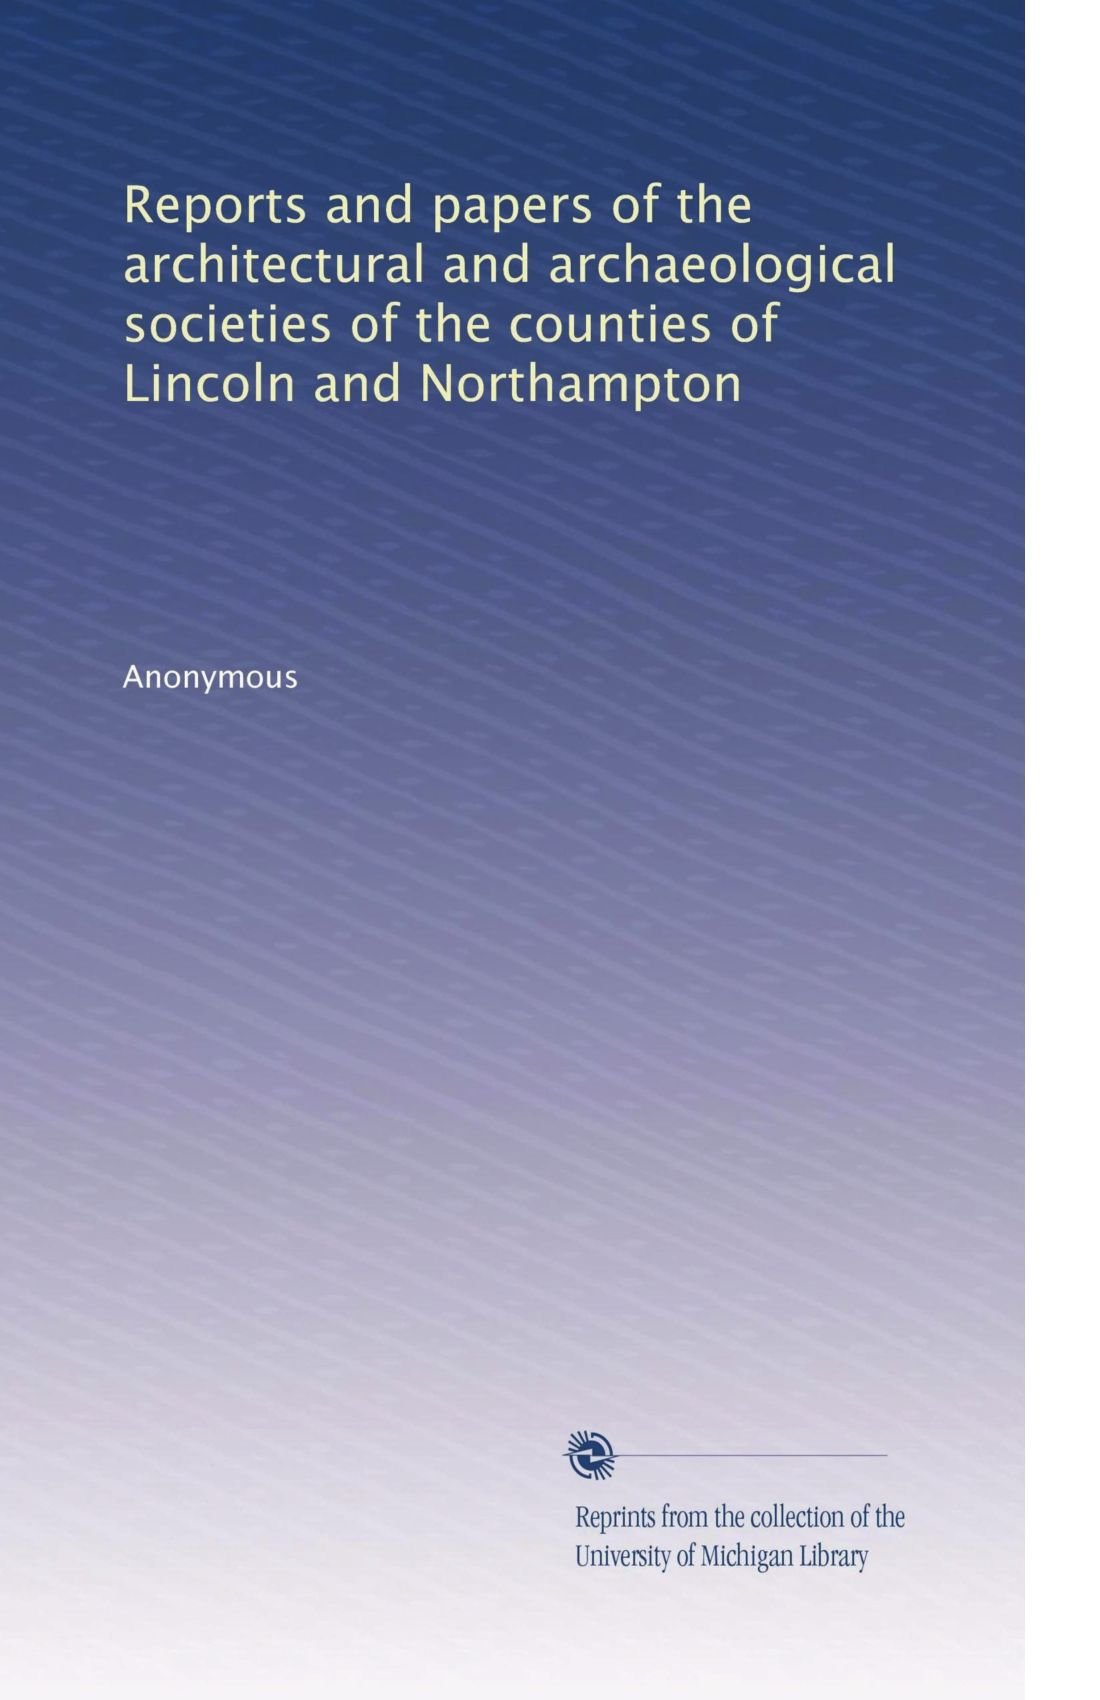 Download Reports and papers of the architectural and archaeological societies of the counties of Lincoln and Northampton (Volume 6) ebook